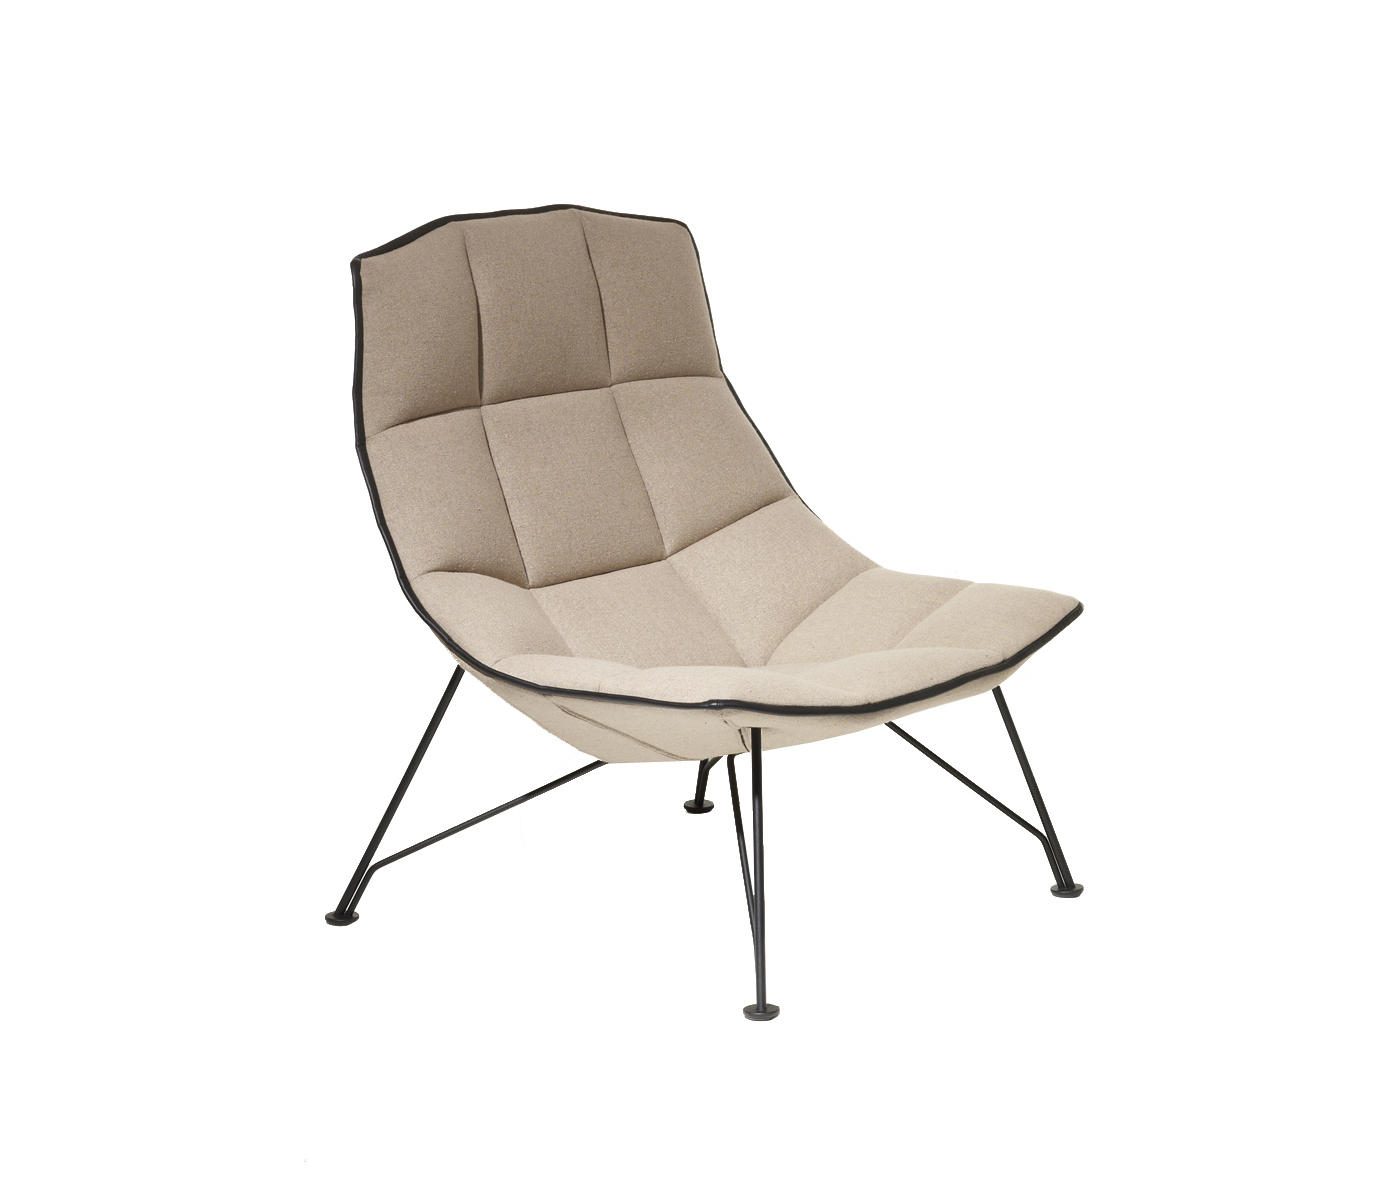 jehs laub lounge chair 2 x 4 deck armchairs from knoll international by